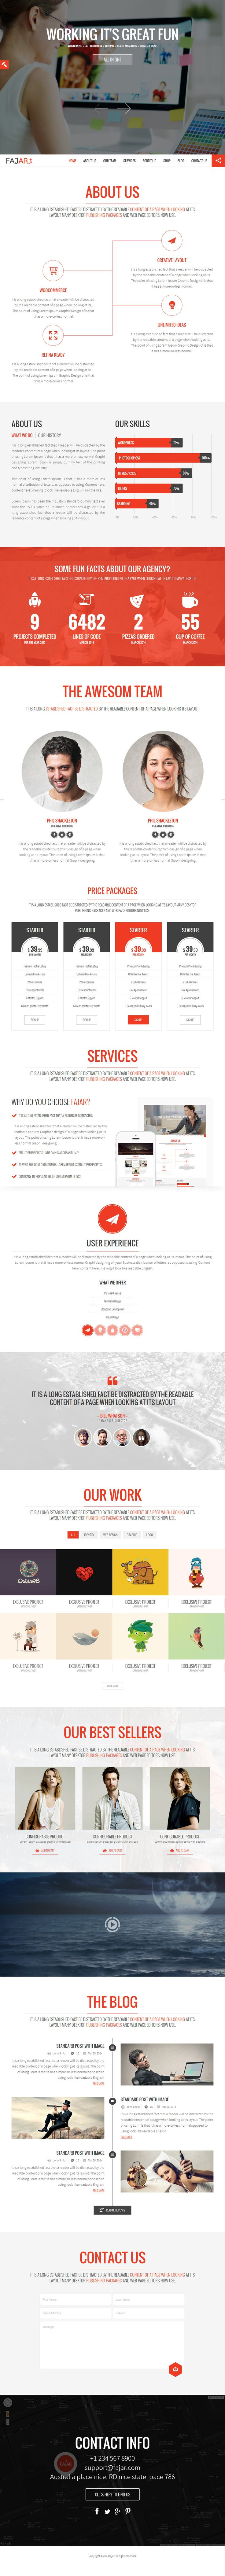 Fajar is Premium full Responsive Retina HTML5 Multipurpose Template. Parallax Scrolling. One Page. Bootstrap 3. Flat Design. http://www.responsivemiracle.com/cms/fajar-premium-responsive-one-page-multipurpose-html5-template/